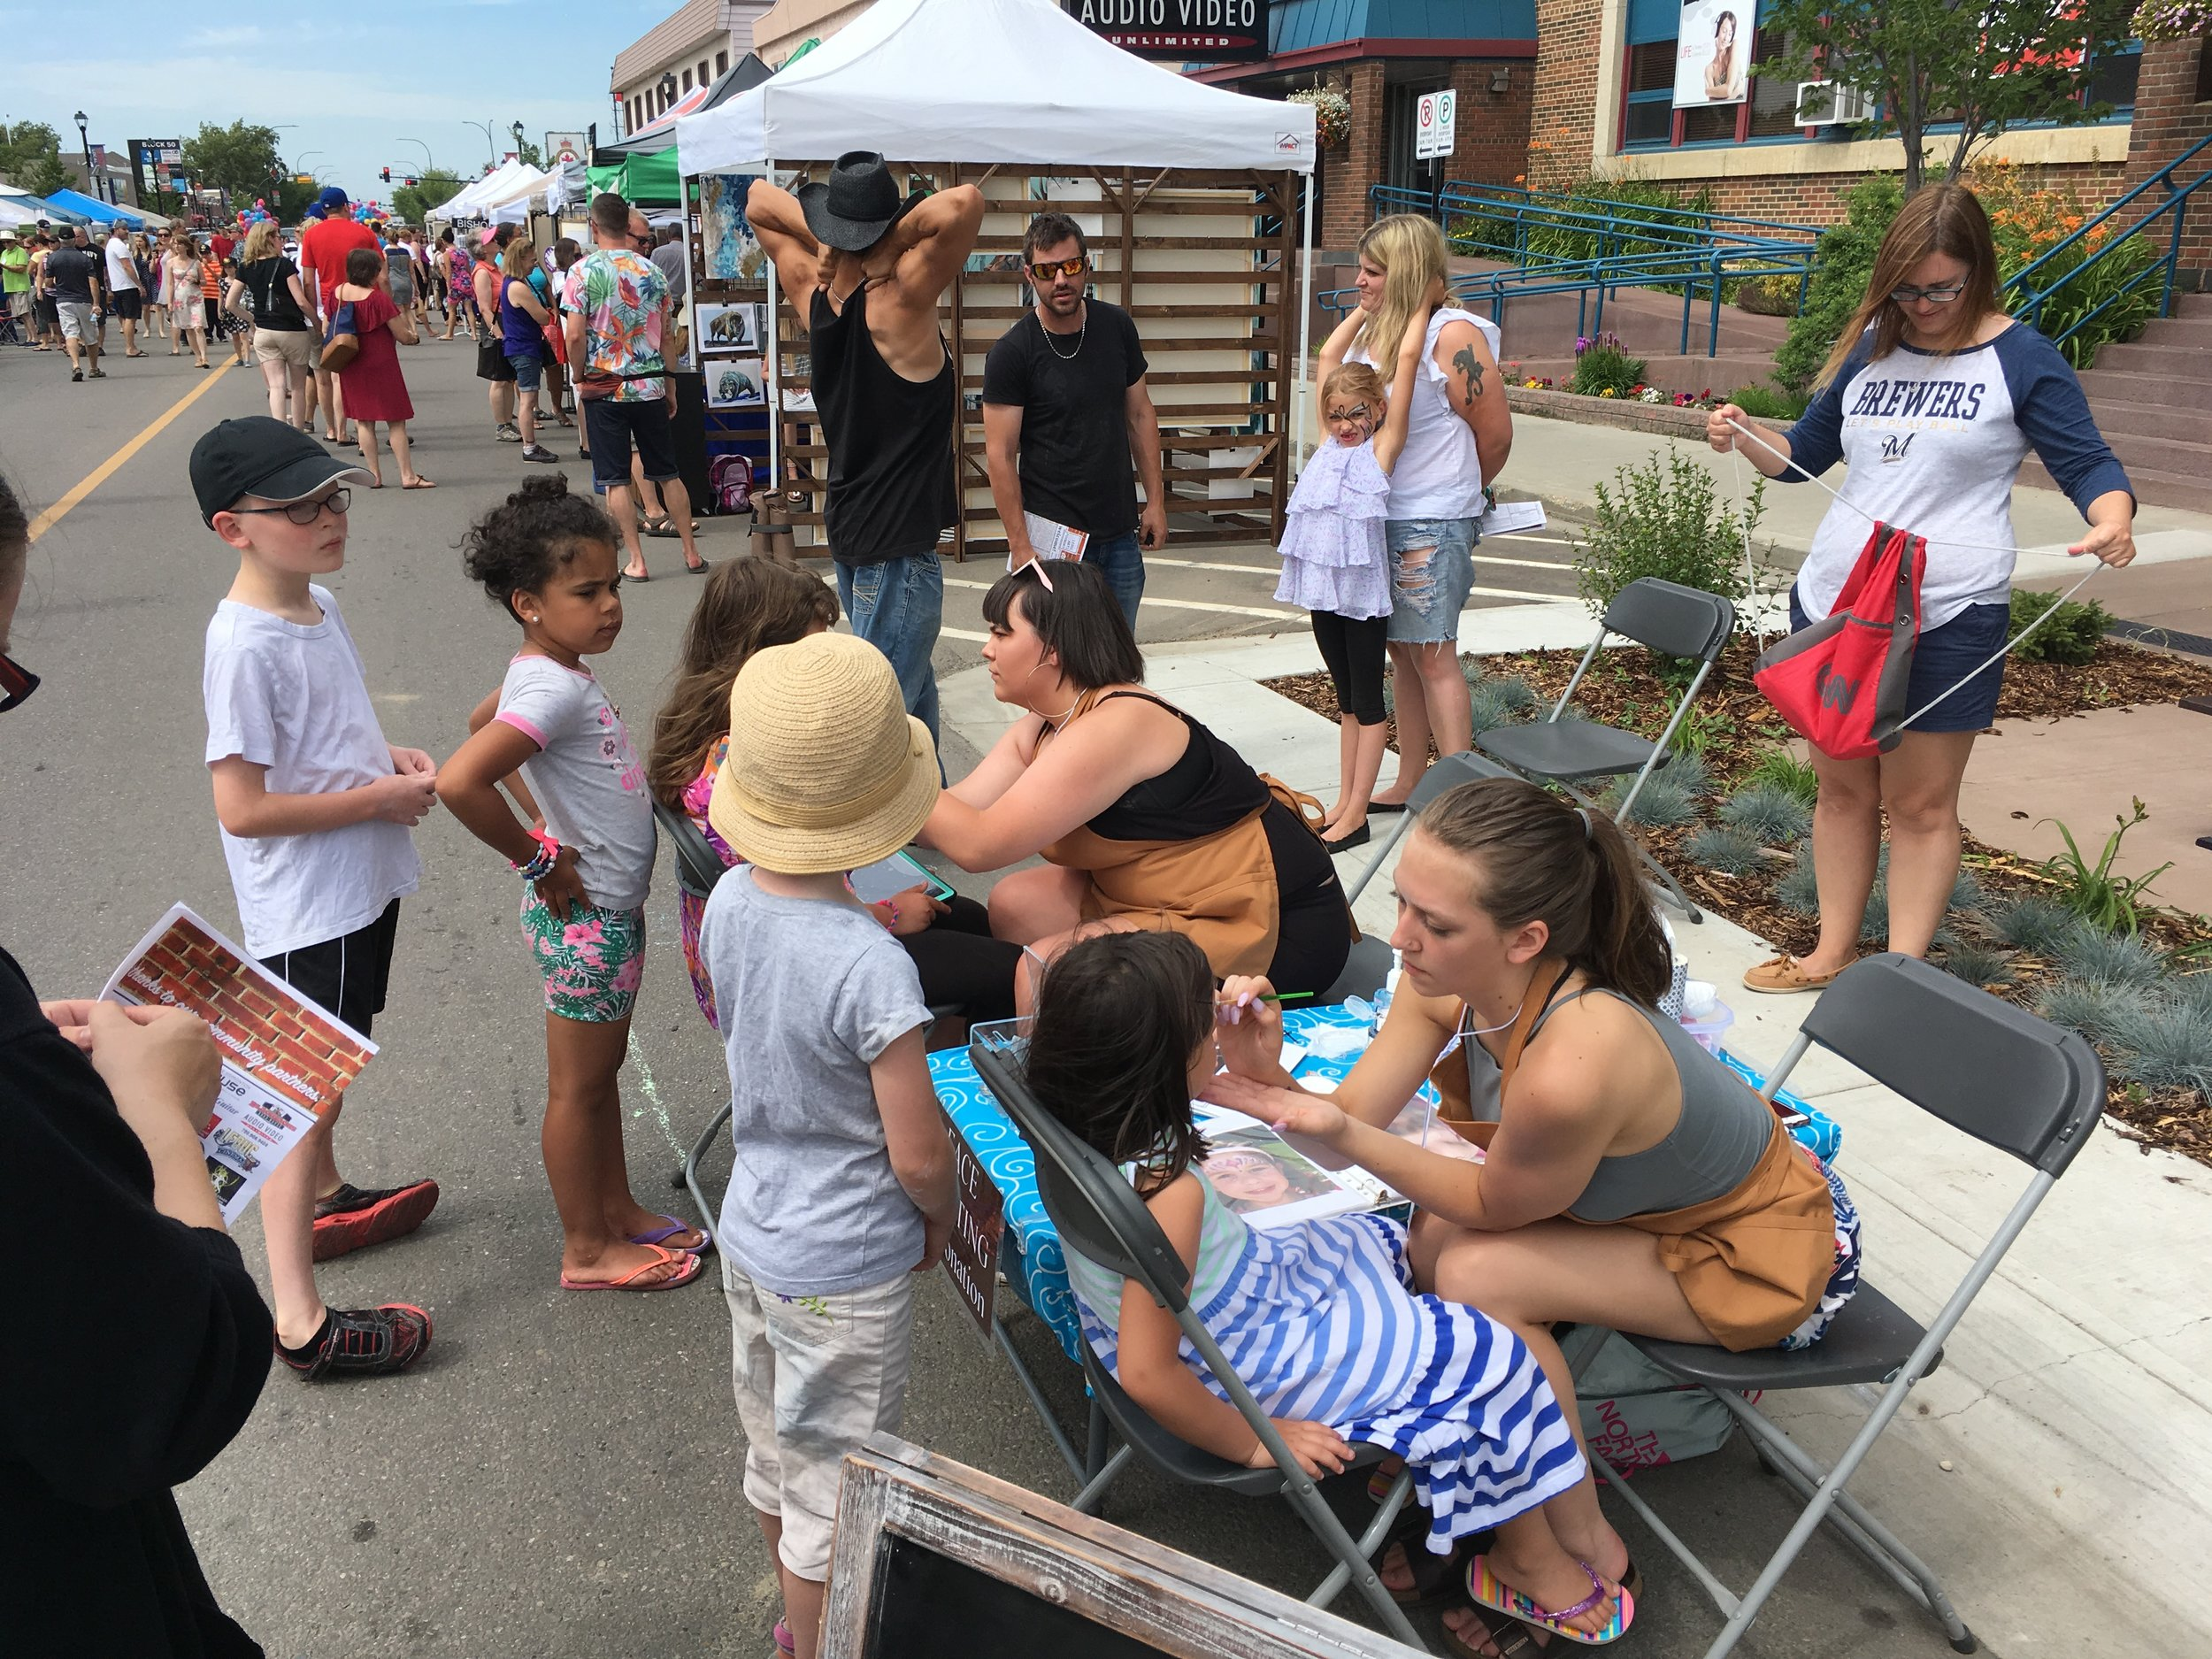 Volunteer with us - Want to get involved in Art Walk but not quite ready to unveil your masterpiece? Read on for more information on other ways you can get in on the fun!